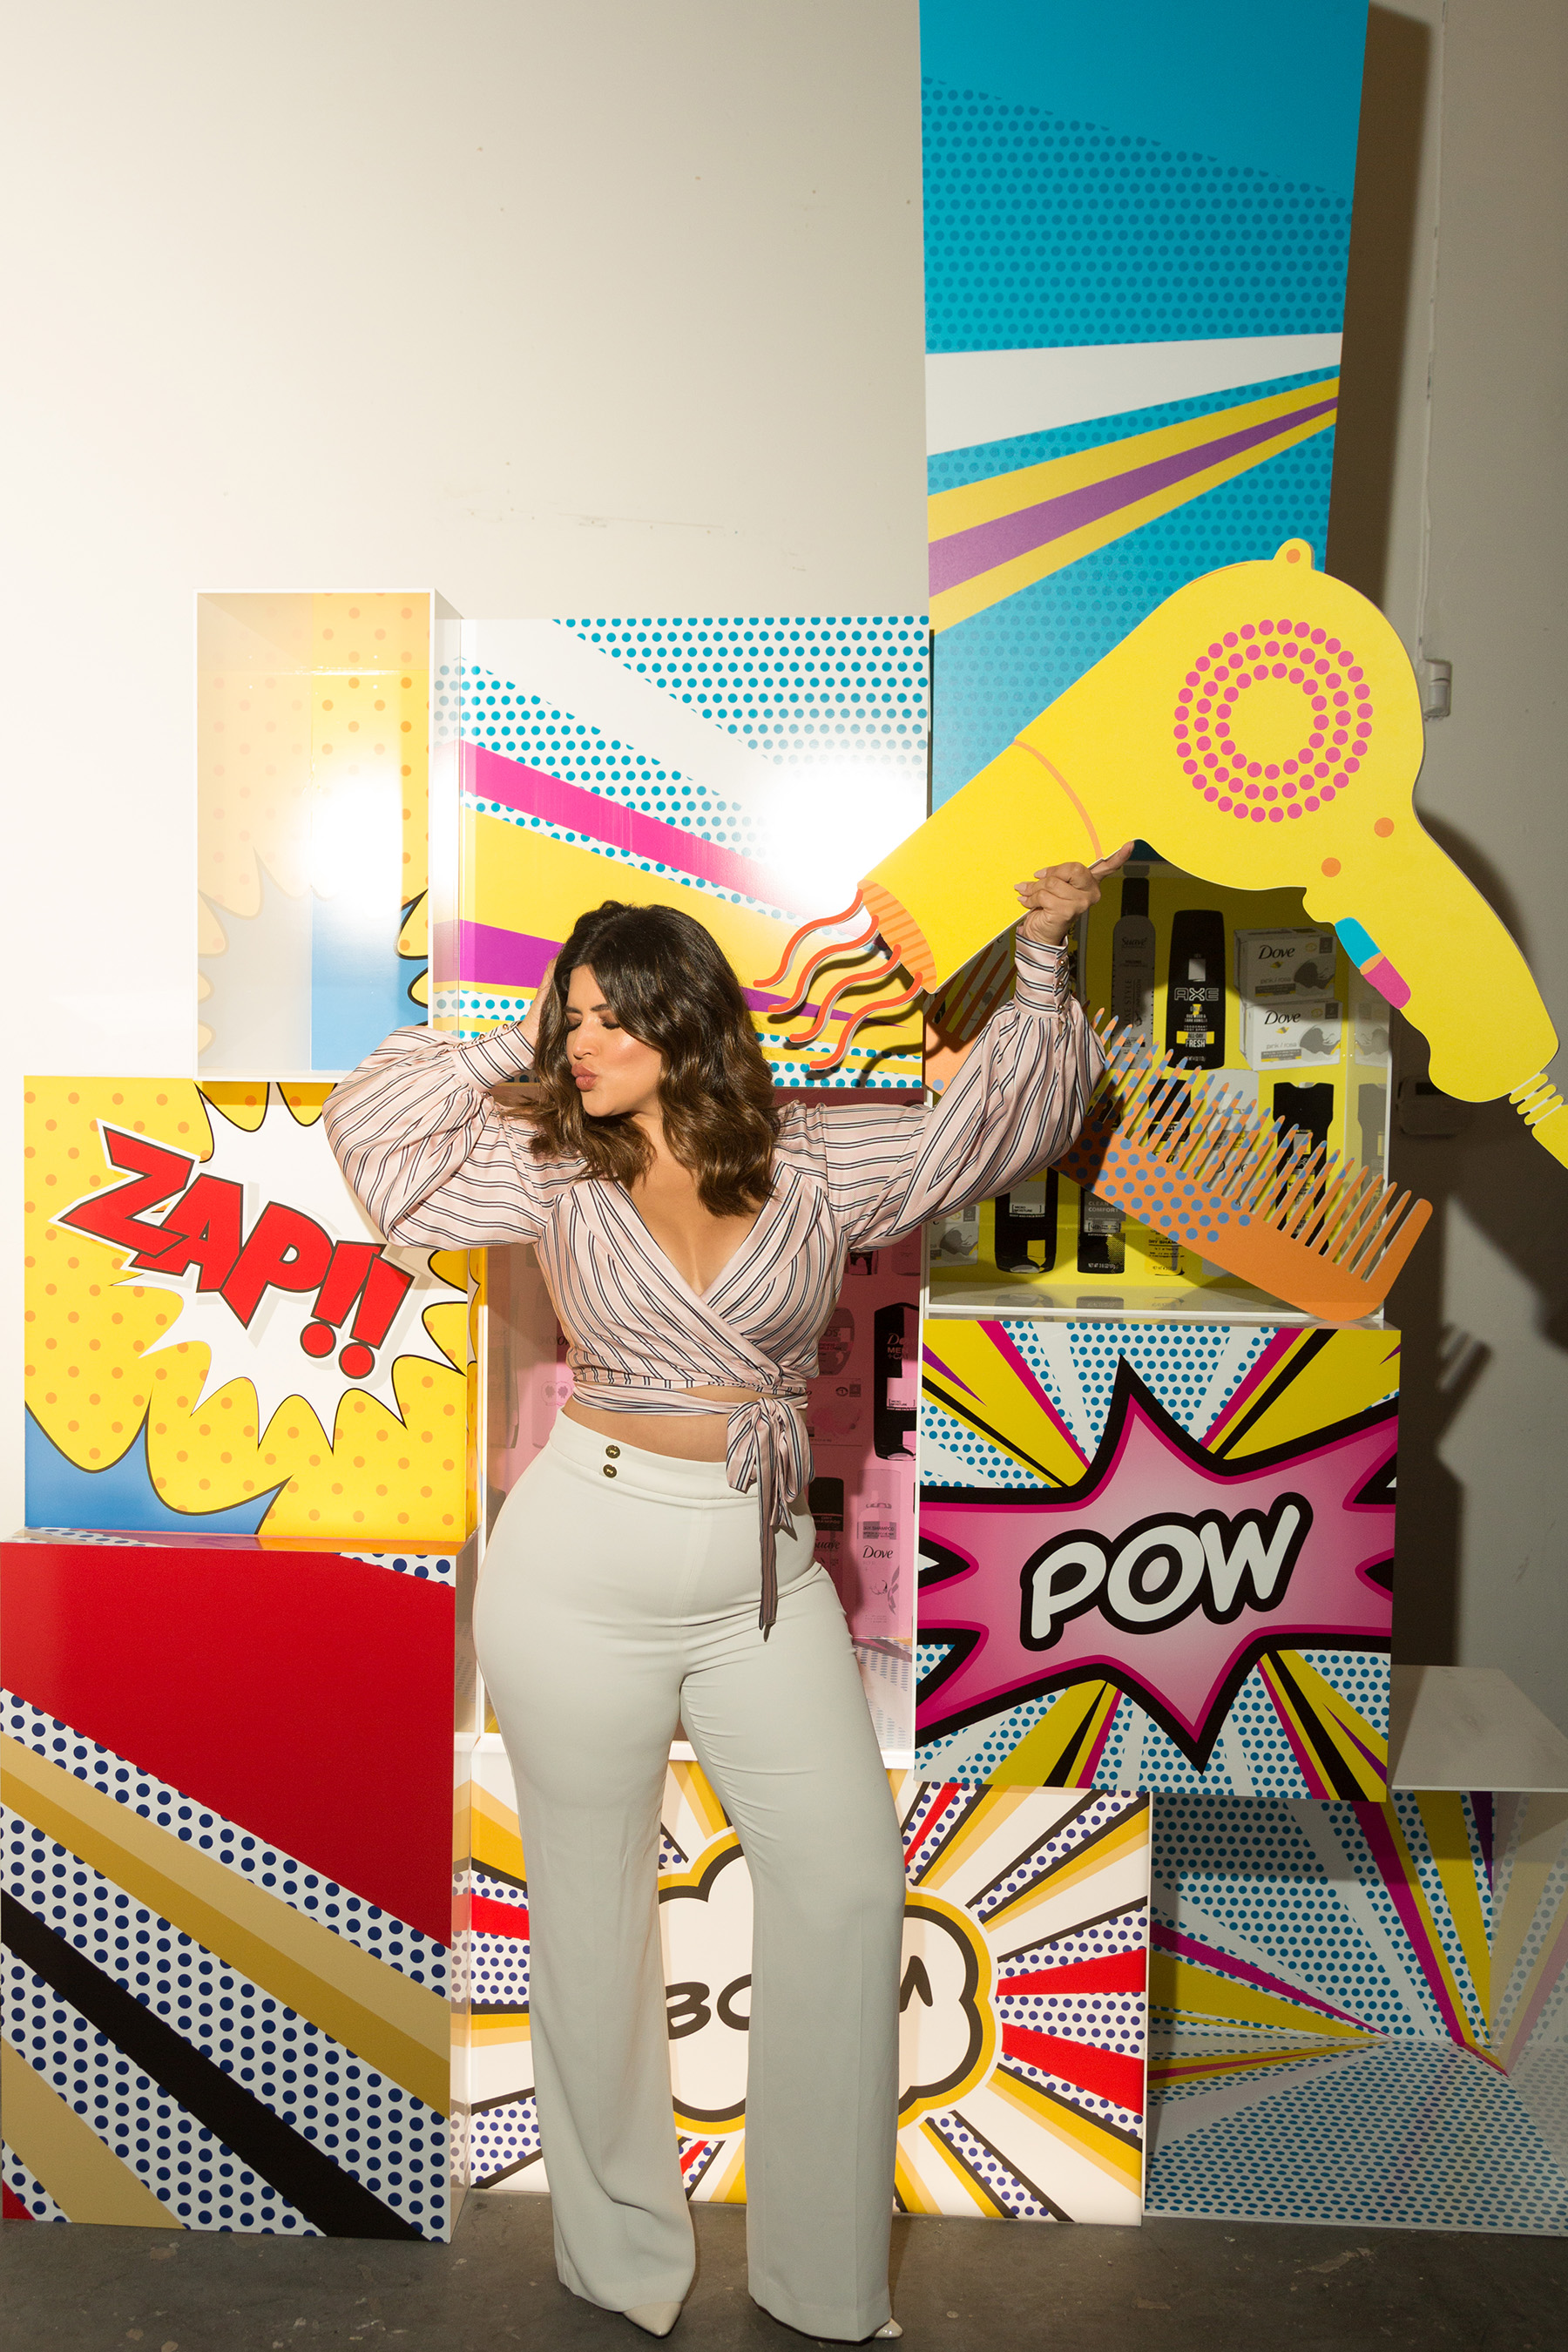 Denise Bidot having fun with the interactive Unilever Beauty and Personal Care customized art installation